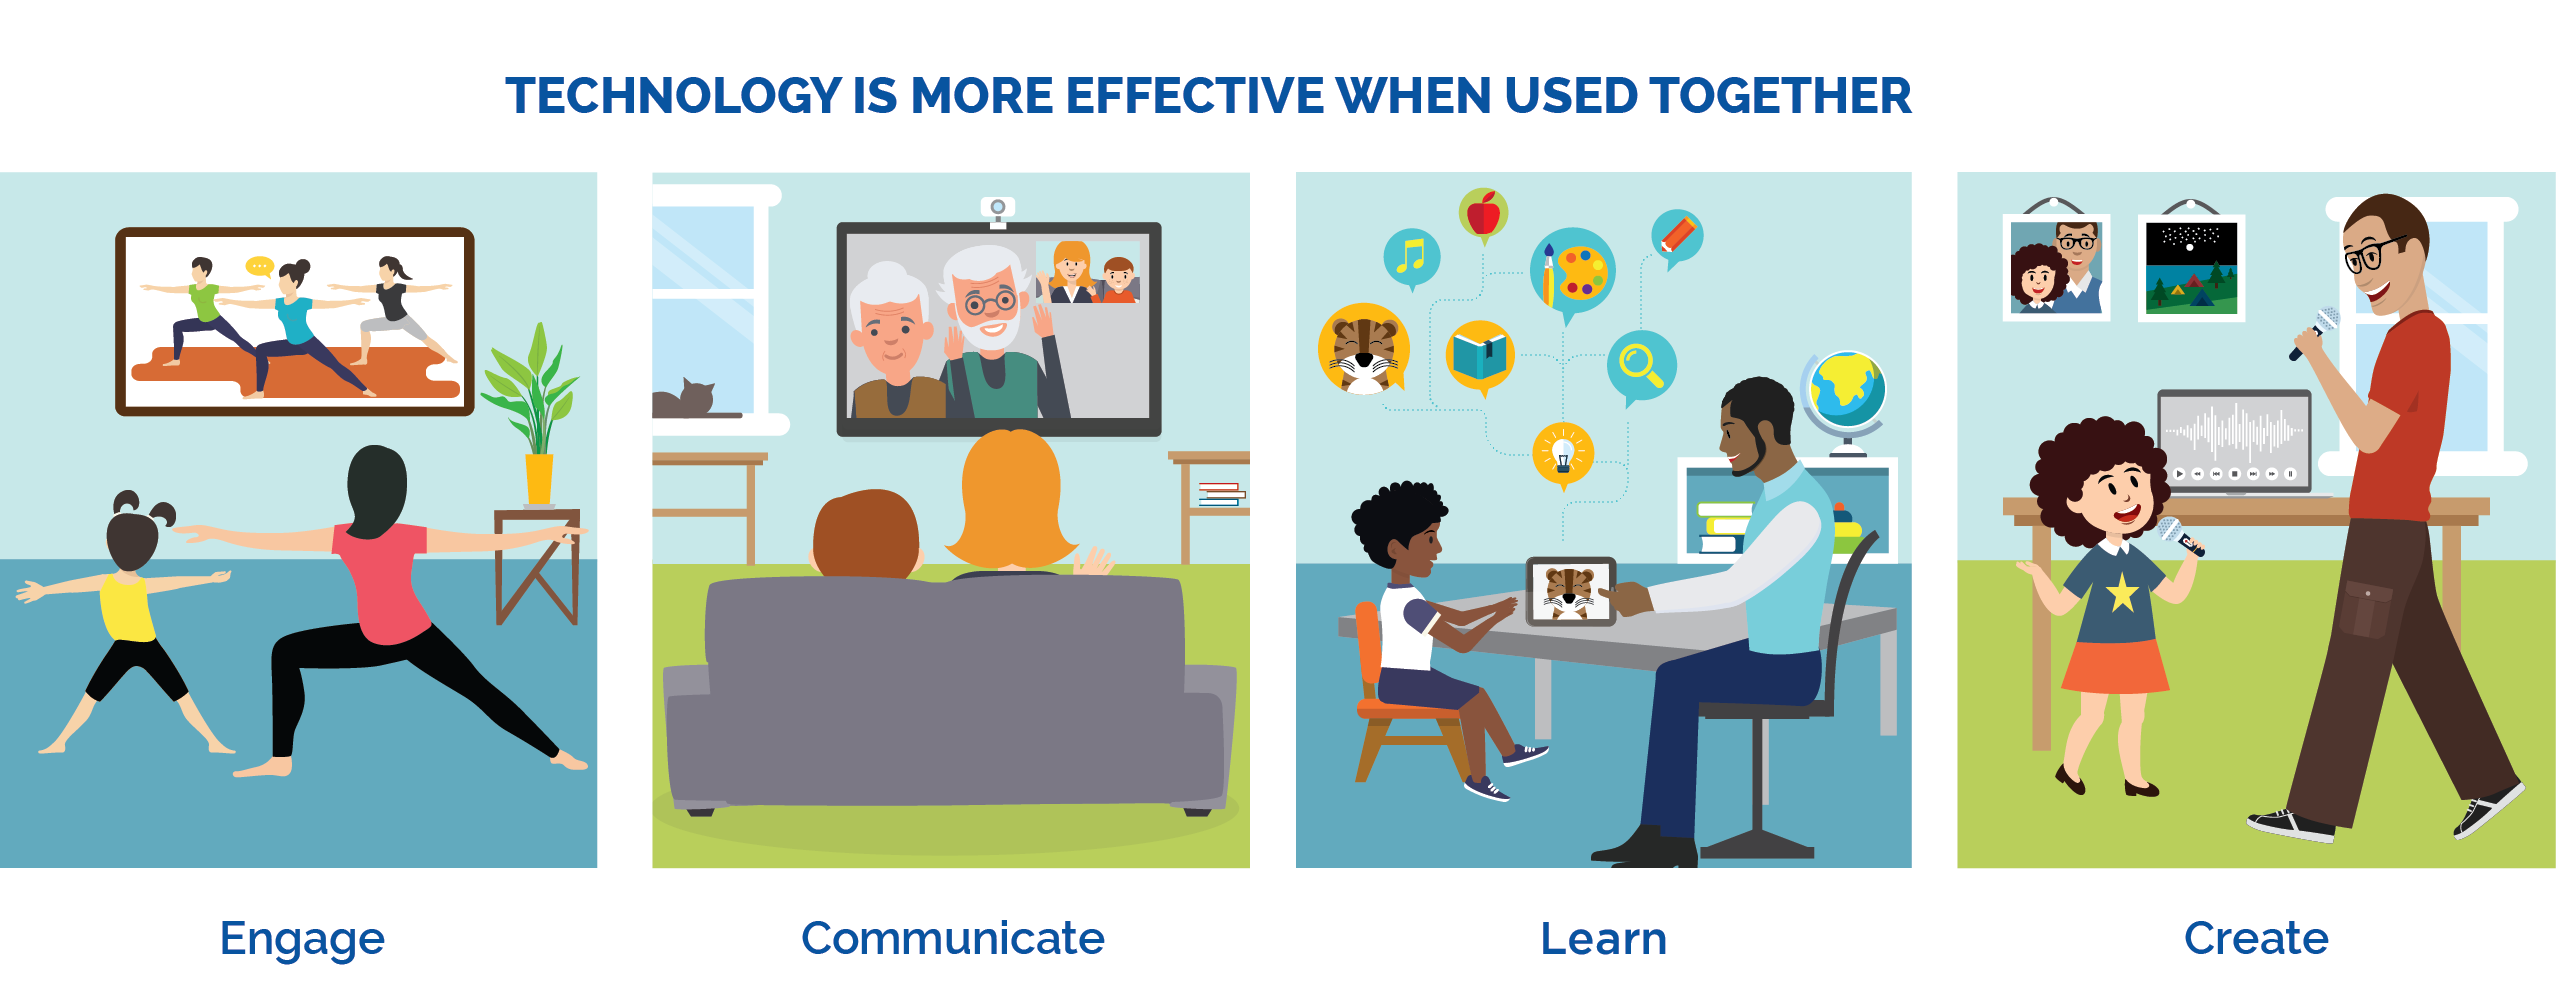 Technology is better when used together graphic